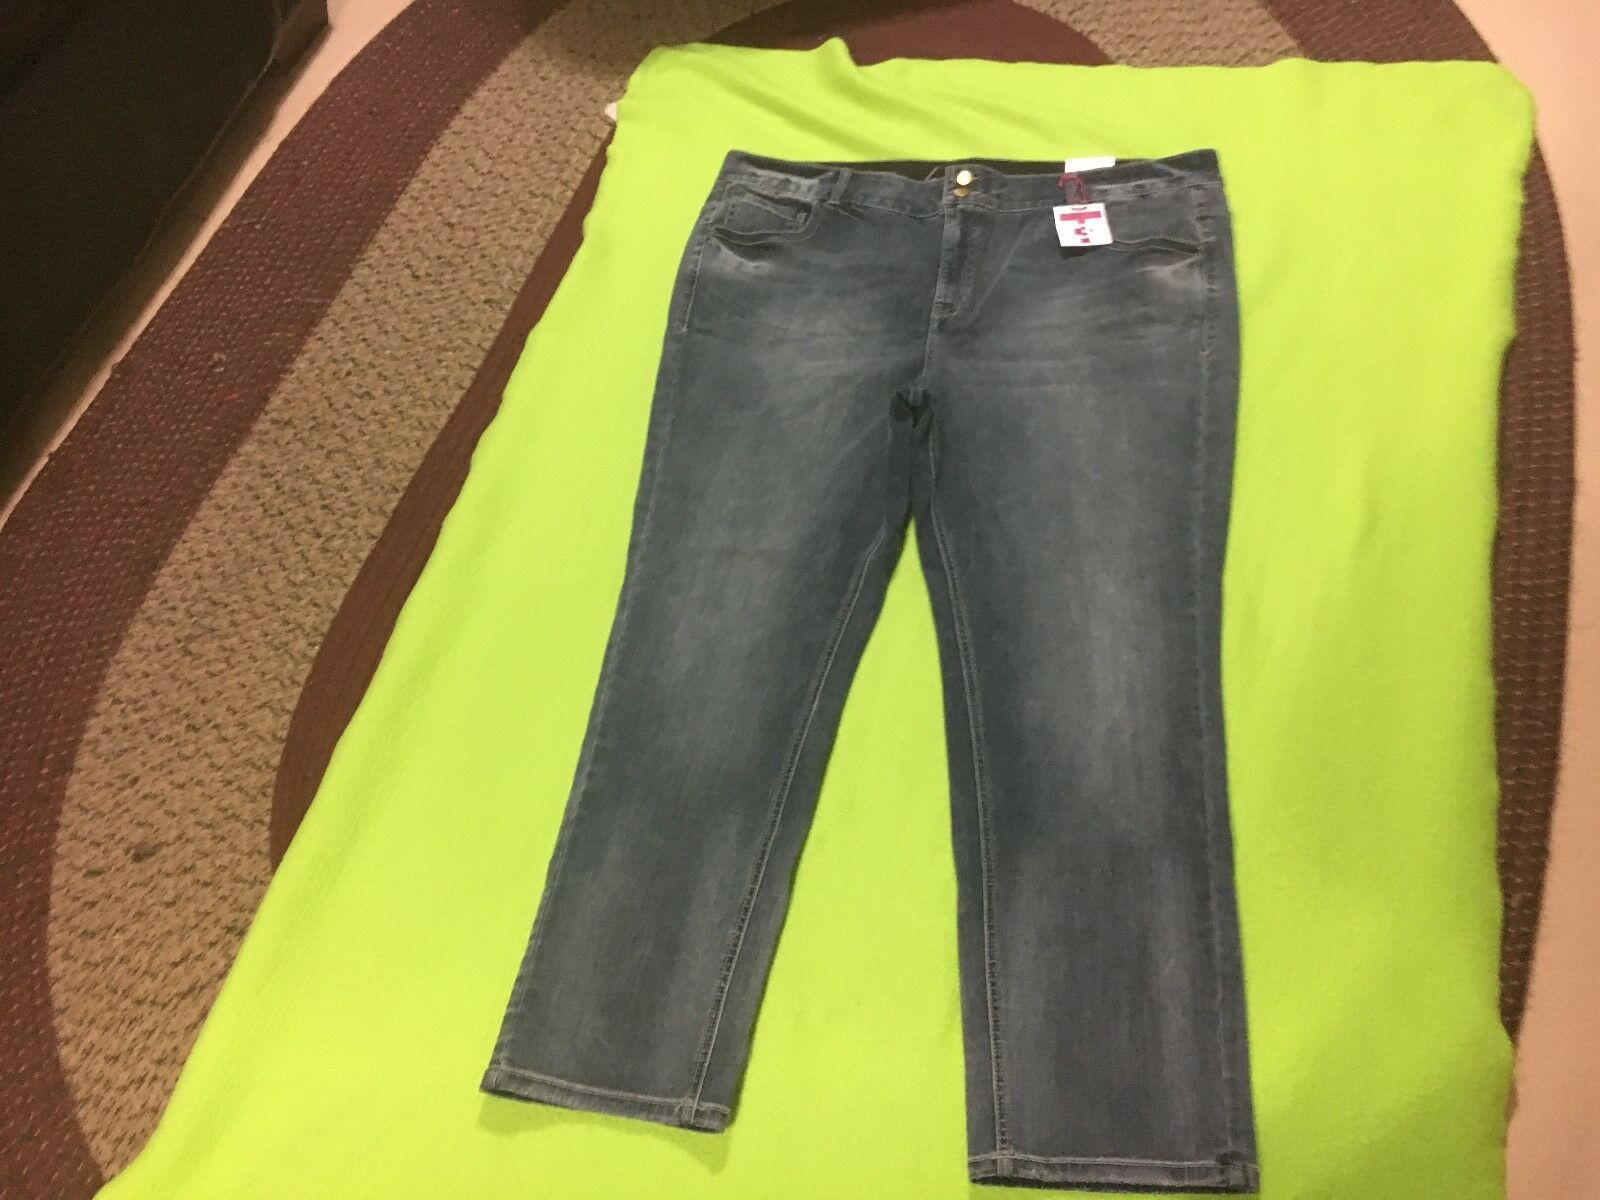 Lane Bryant Women's NWT Straight Fit Tummy Control Jeans. Size 26 Short